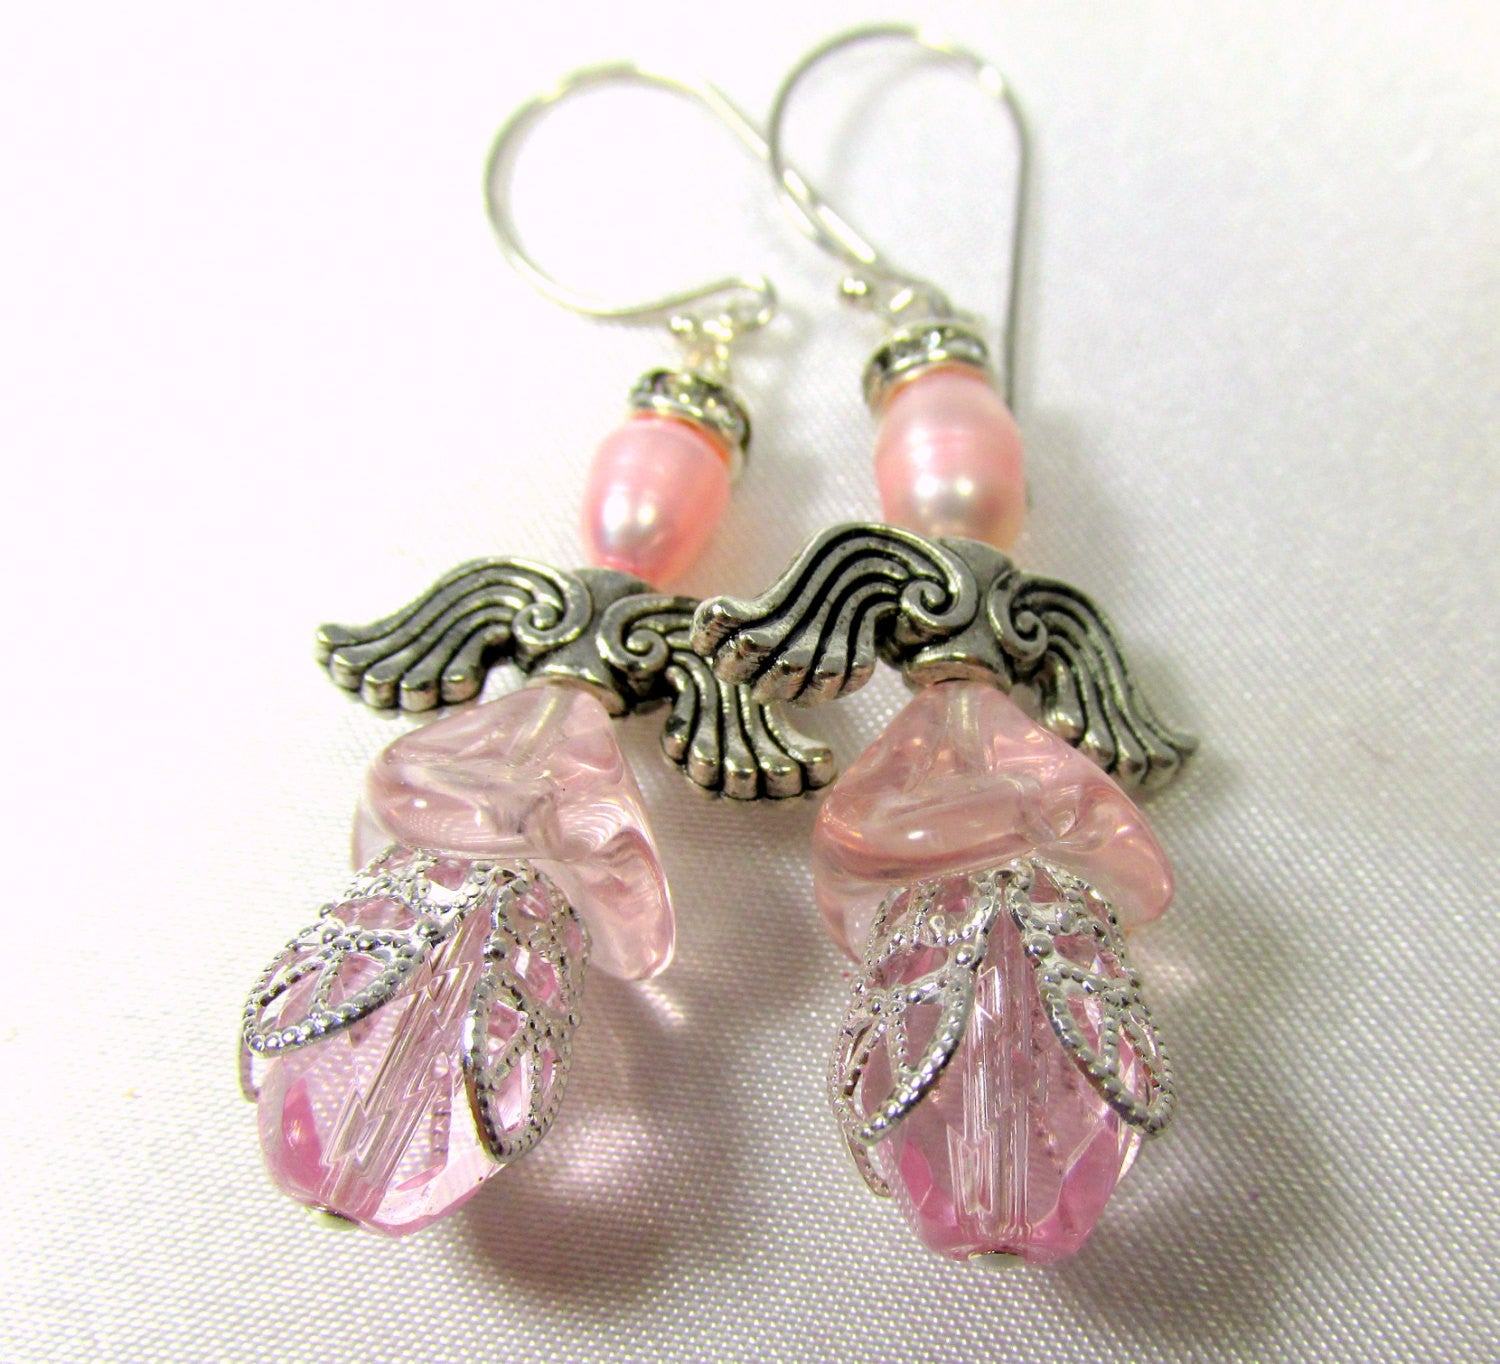 On Sale - Pink Angel Earrings on Sterling Silver Wires with Freshwater Pearls and Czech Glass Dresses - Odyssey Creations